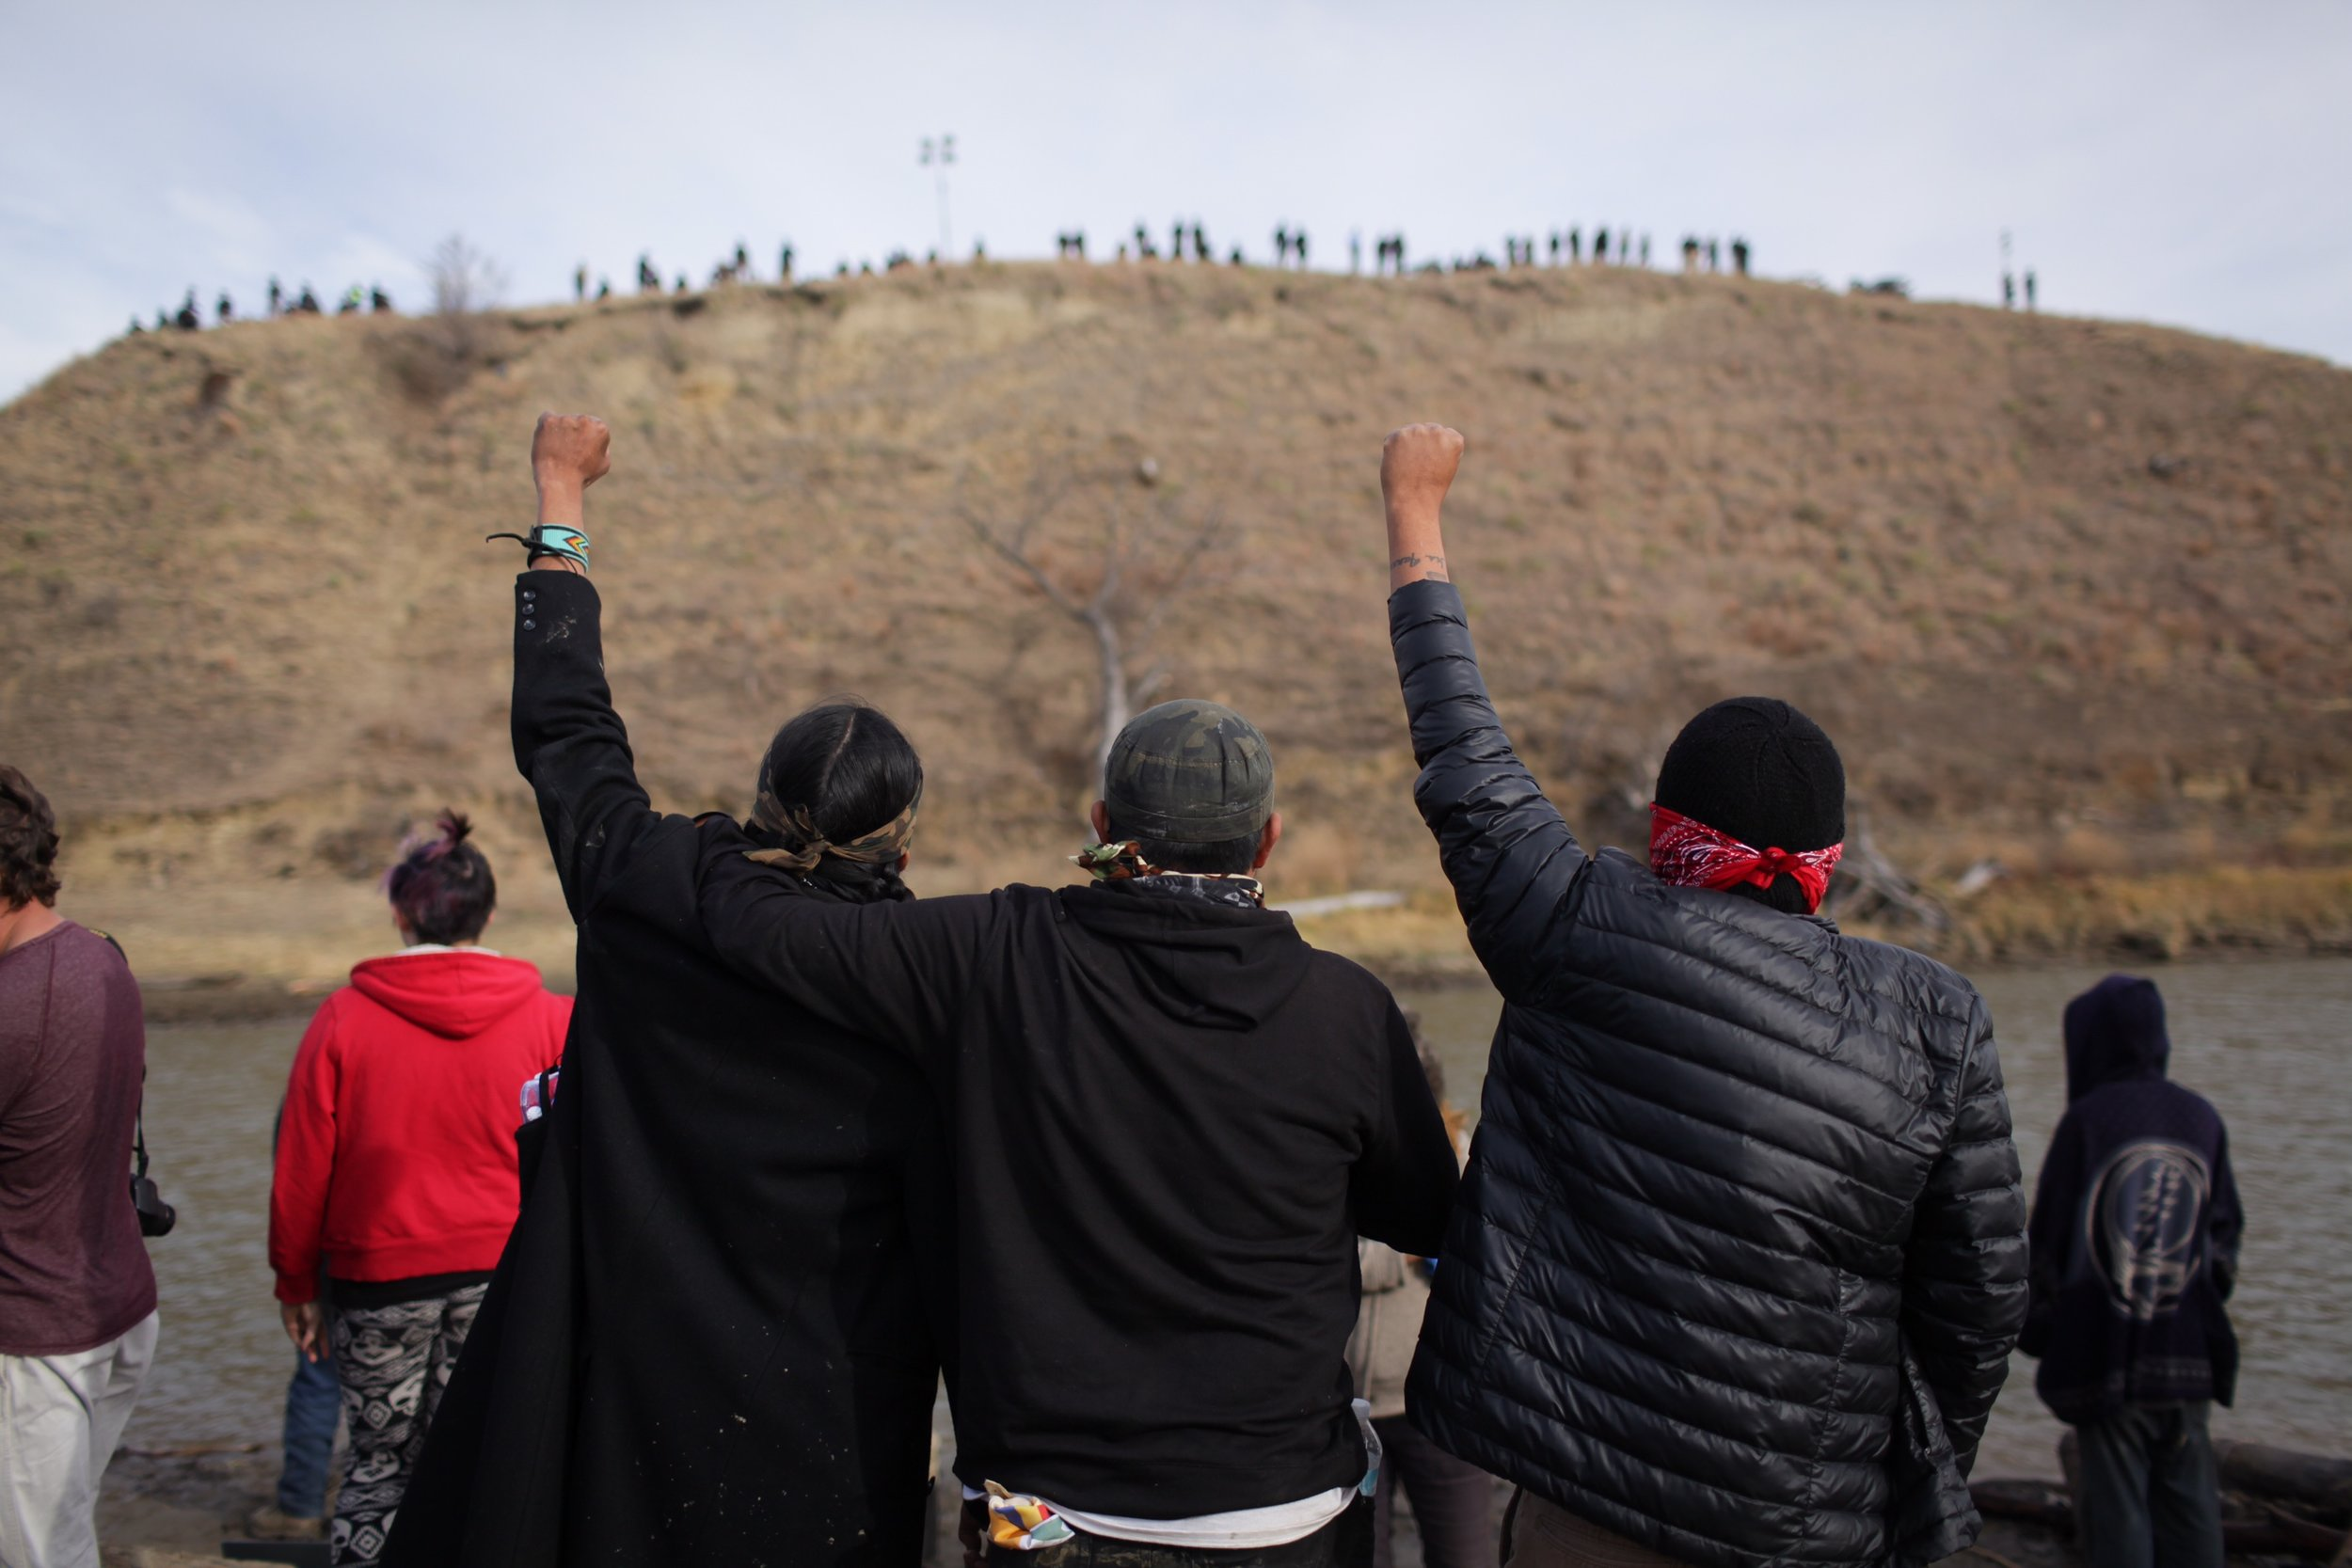 THE NATION: THIS GOVERNMENT AGENCY HAS THE POWER TO STOP THE DAKOTA ACCESS PIPELINE. WILL IT?